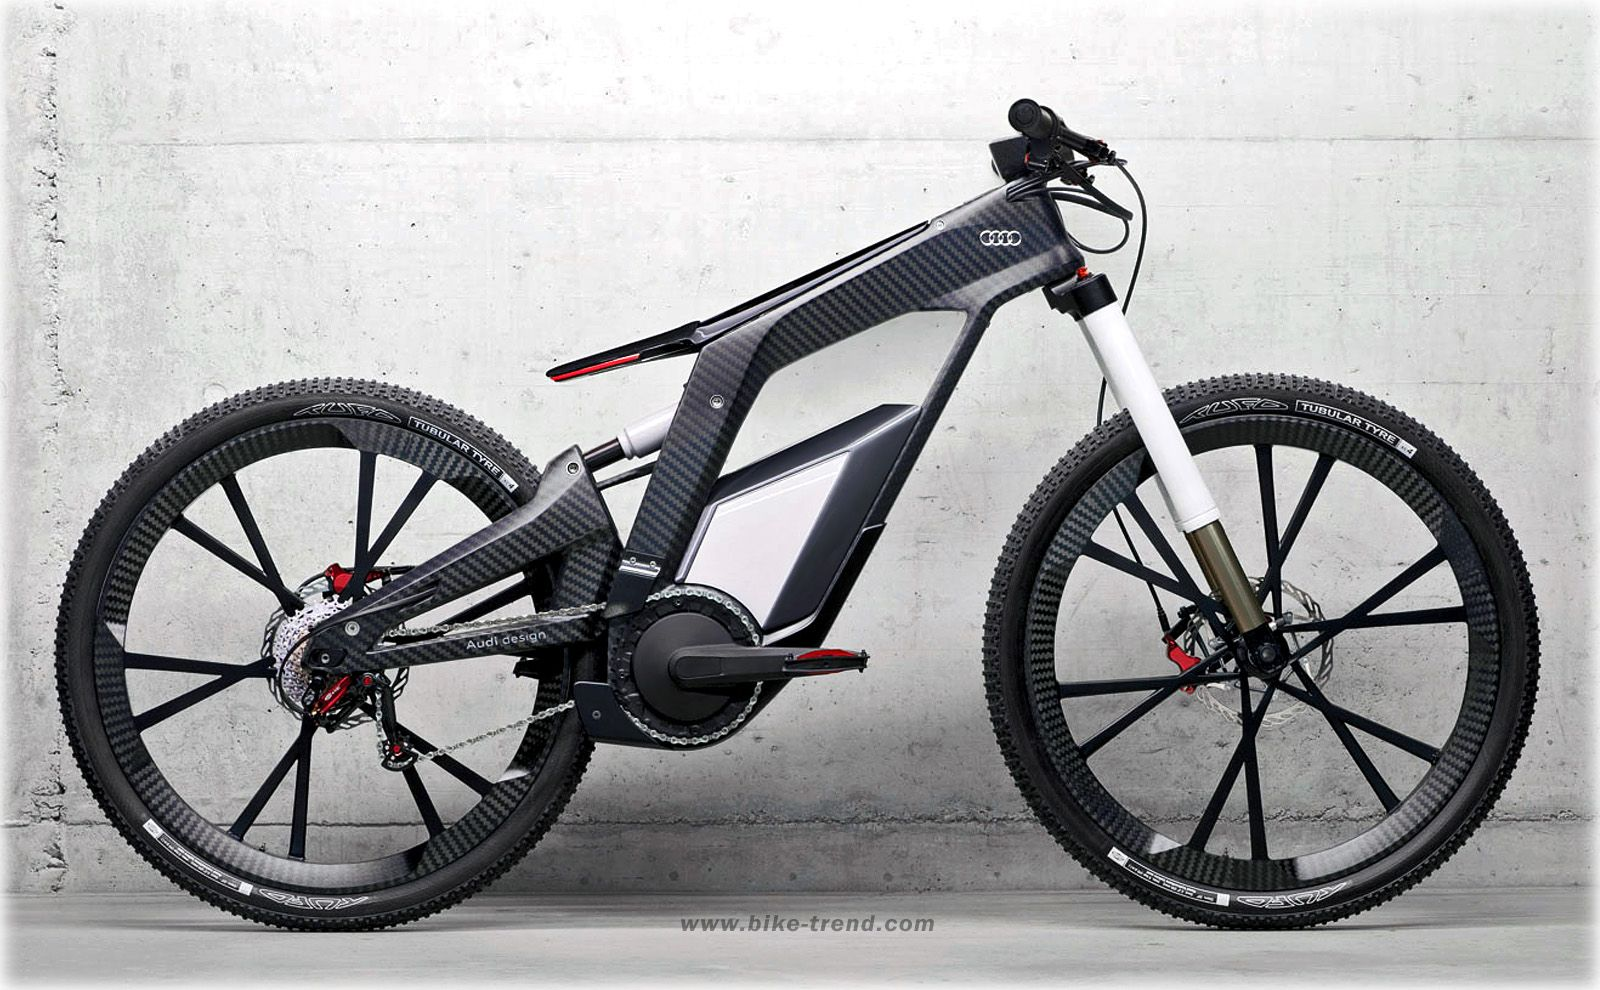 Audi E Bike Concept 2012 Electrical Bicycle By Audi Design Ebike Bike Design Best Electric Bikes